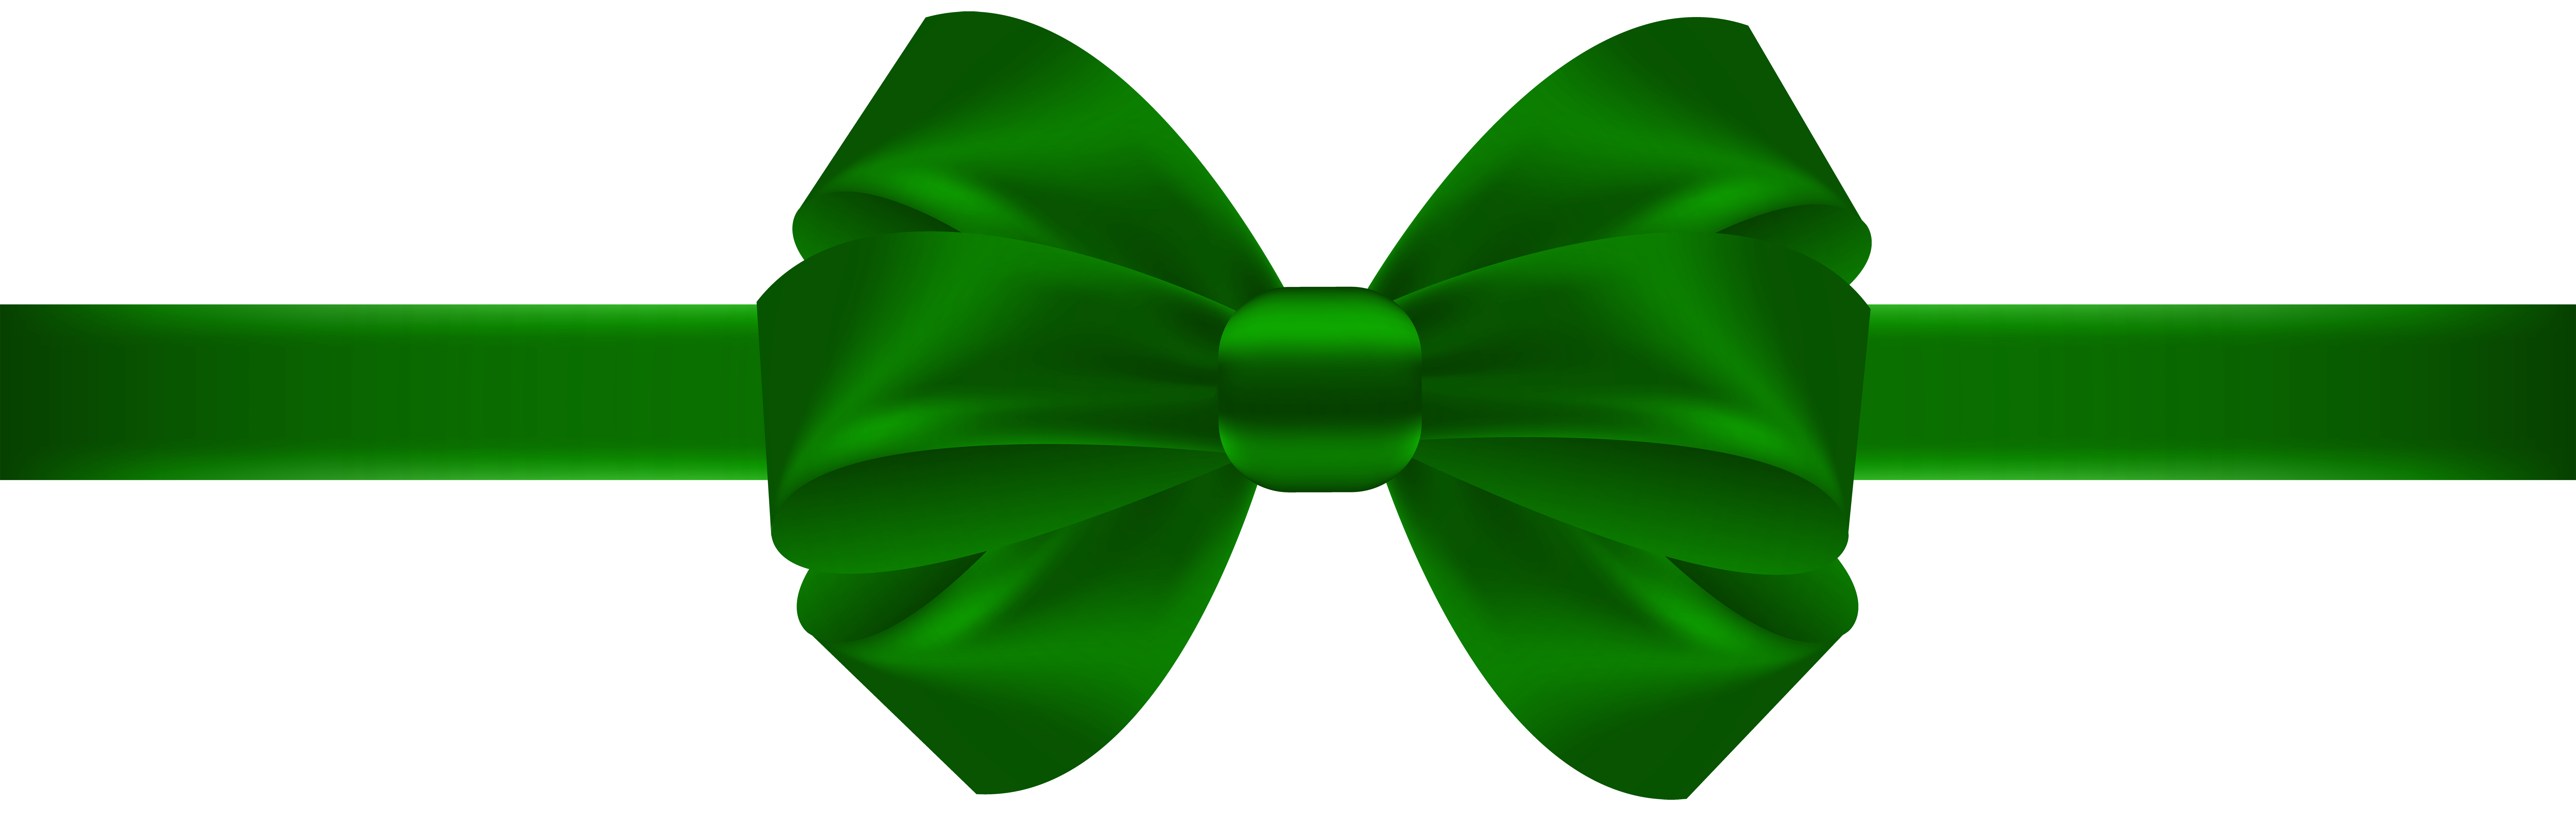 8000x2528 Bow Clipart, Suggestions For Bow Clipart, Download Bow Clipart